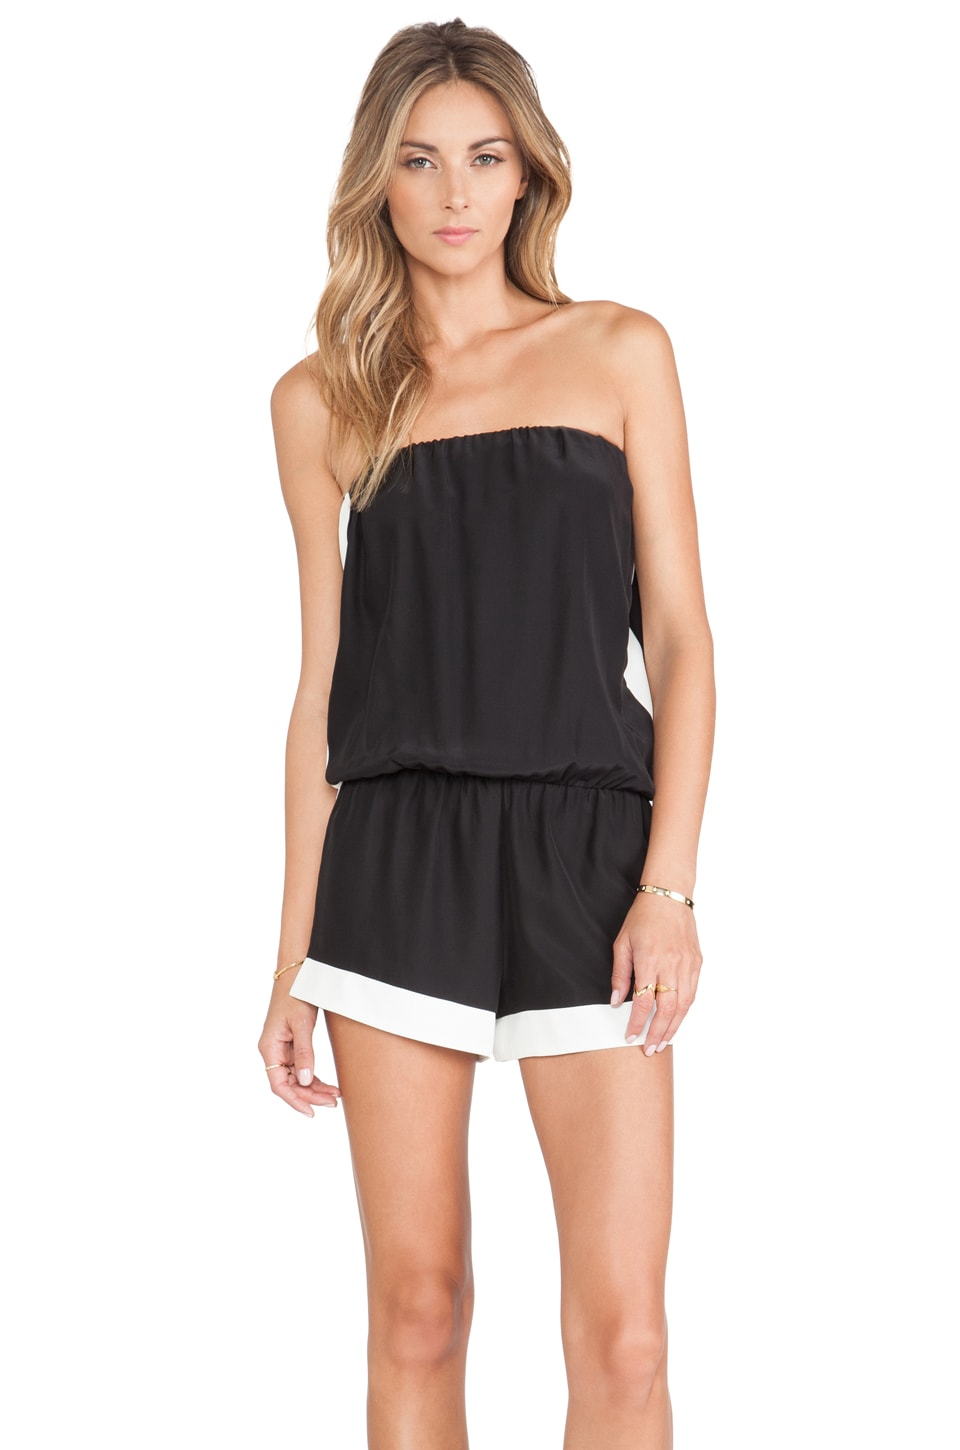 Alexis Linz Strapless Romper in Black White